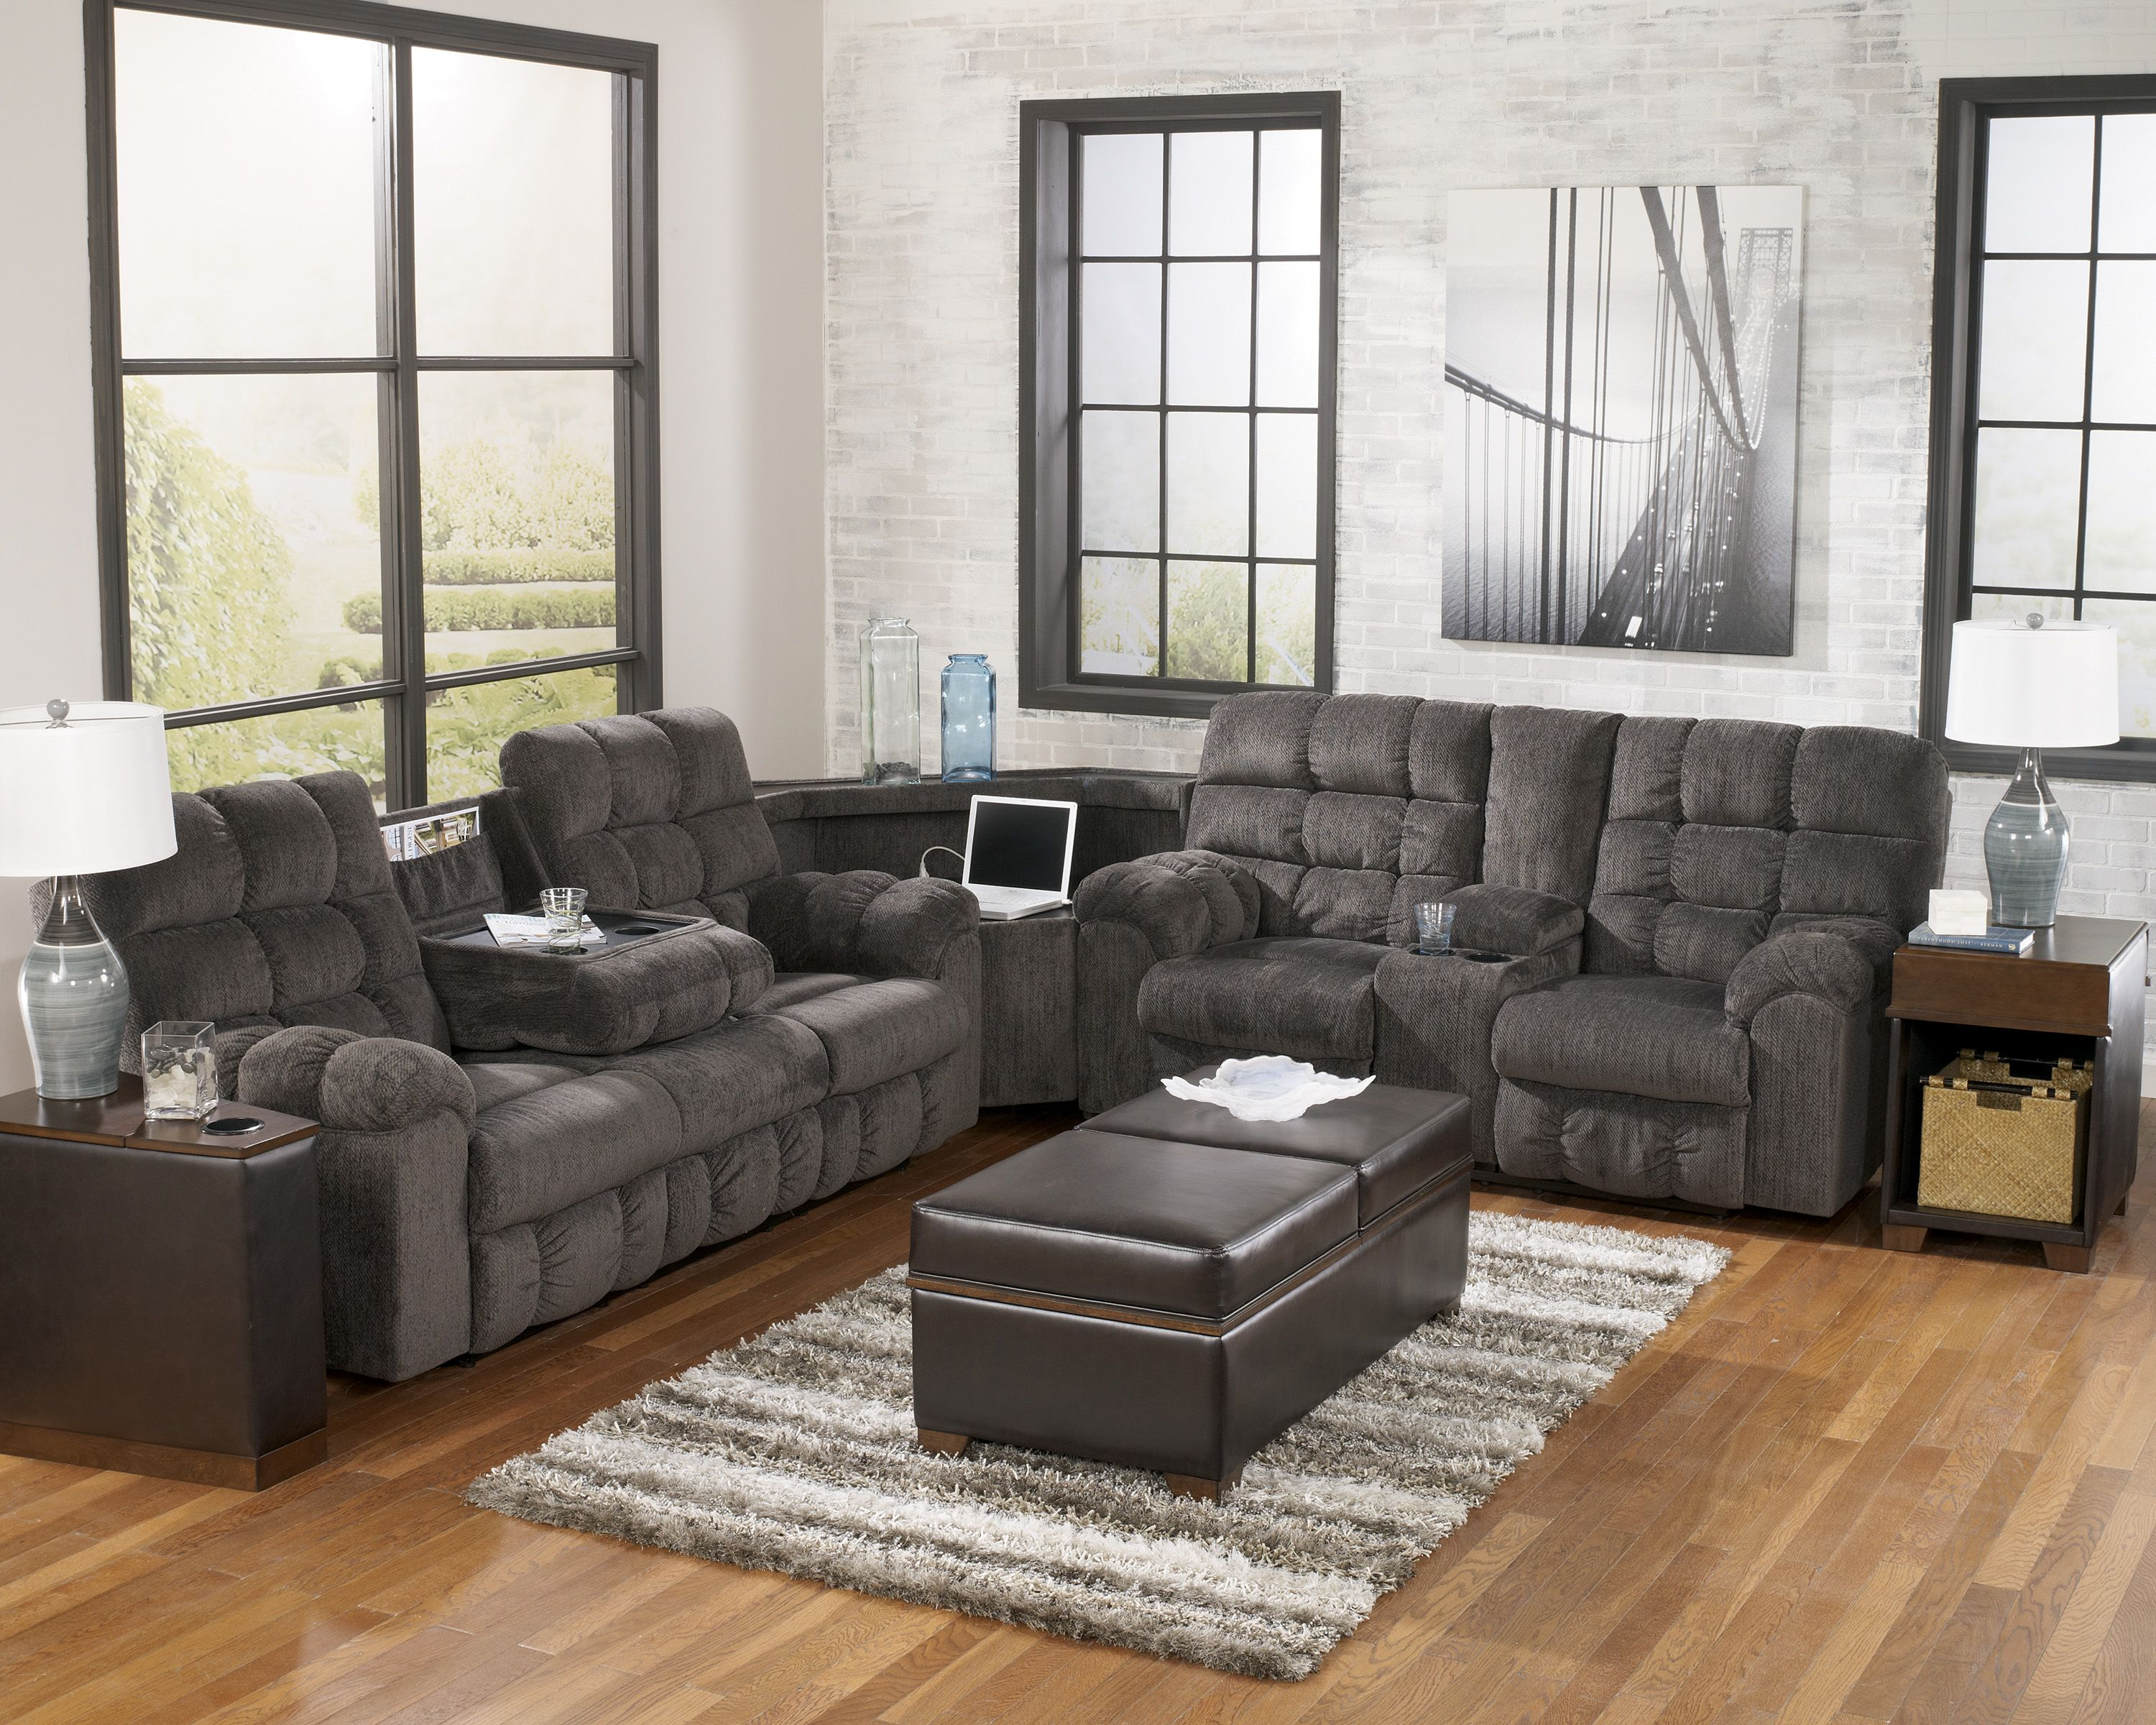 Living Room Sofa Sets For 1000 Images About House Tips Decoration On Pinterest